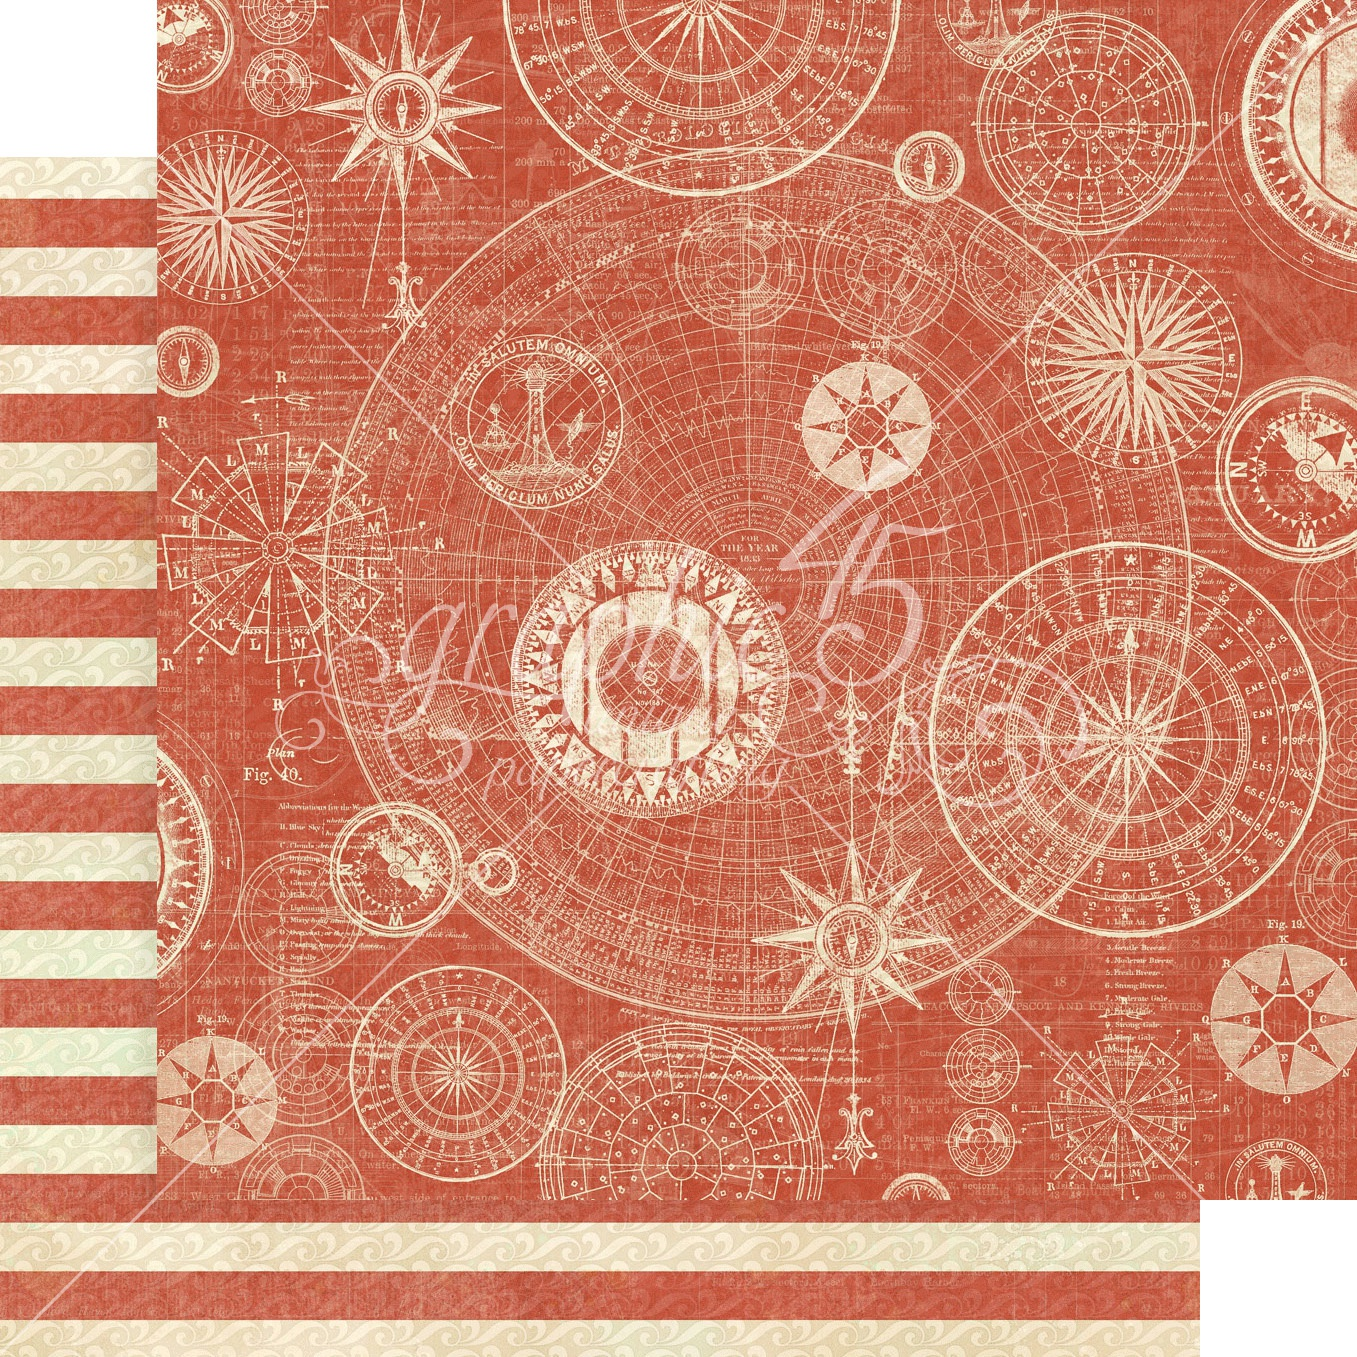 Catch Of The Day Double-Sided Cardstock - Guiding Light 12x12